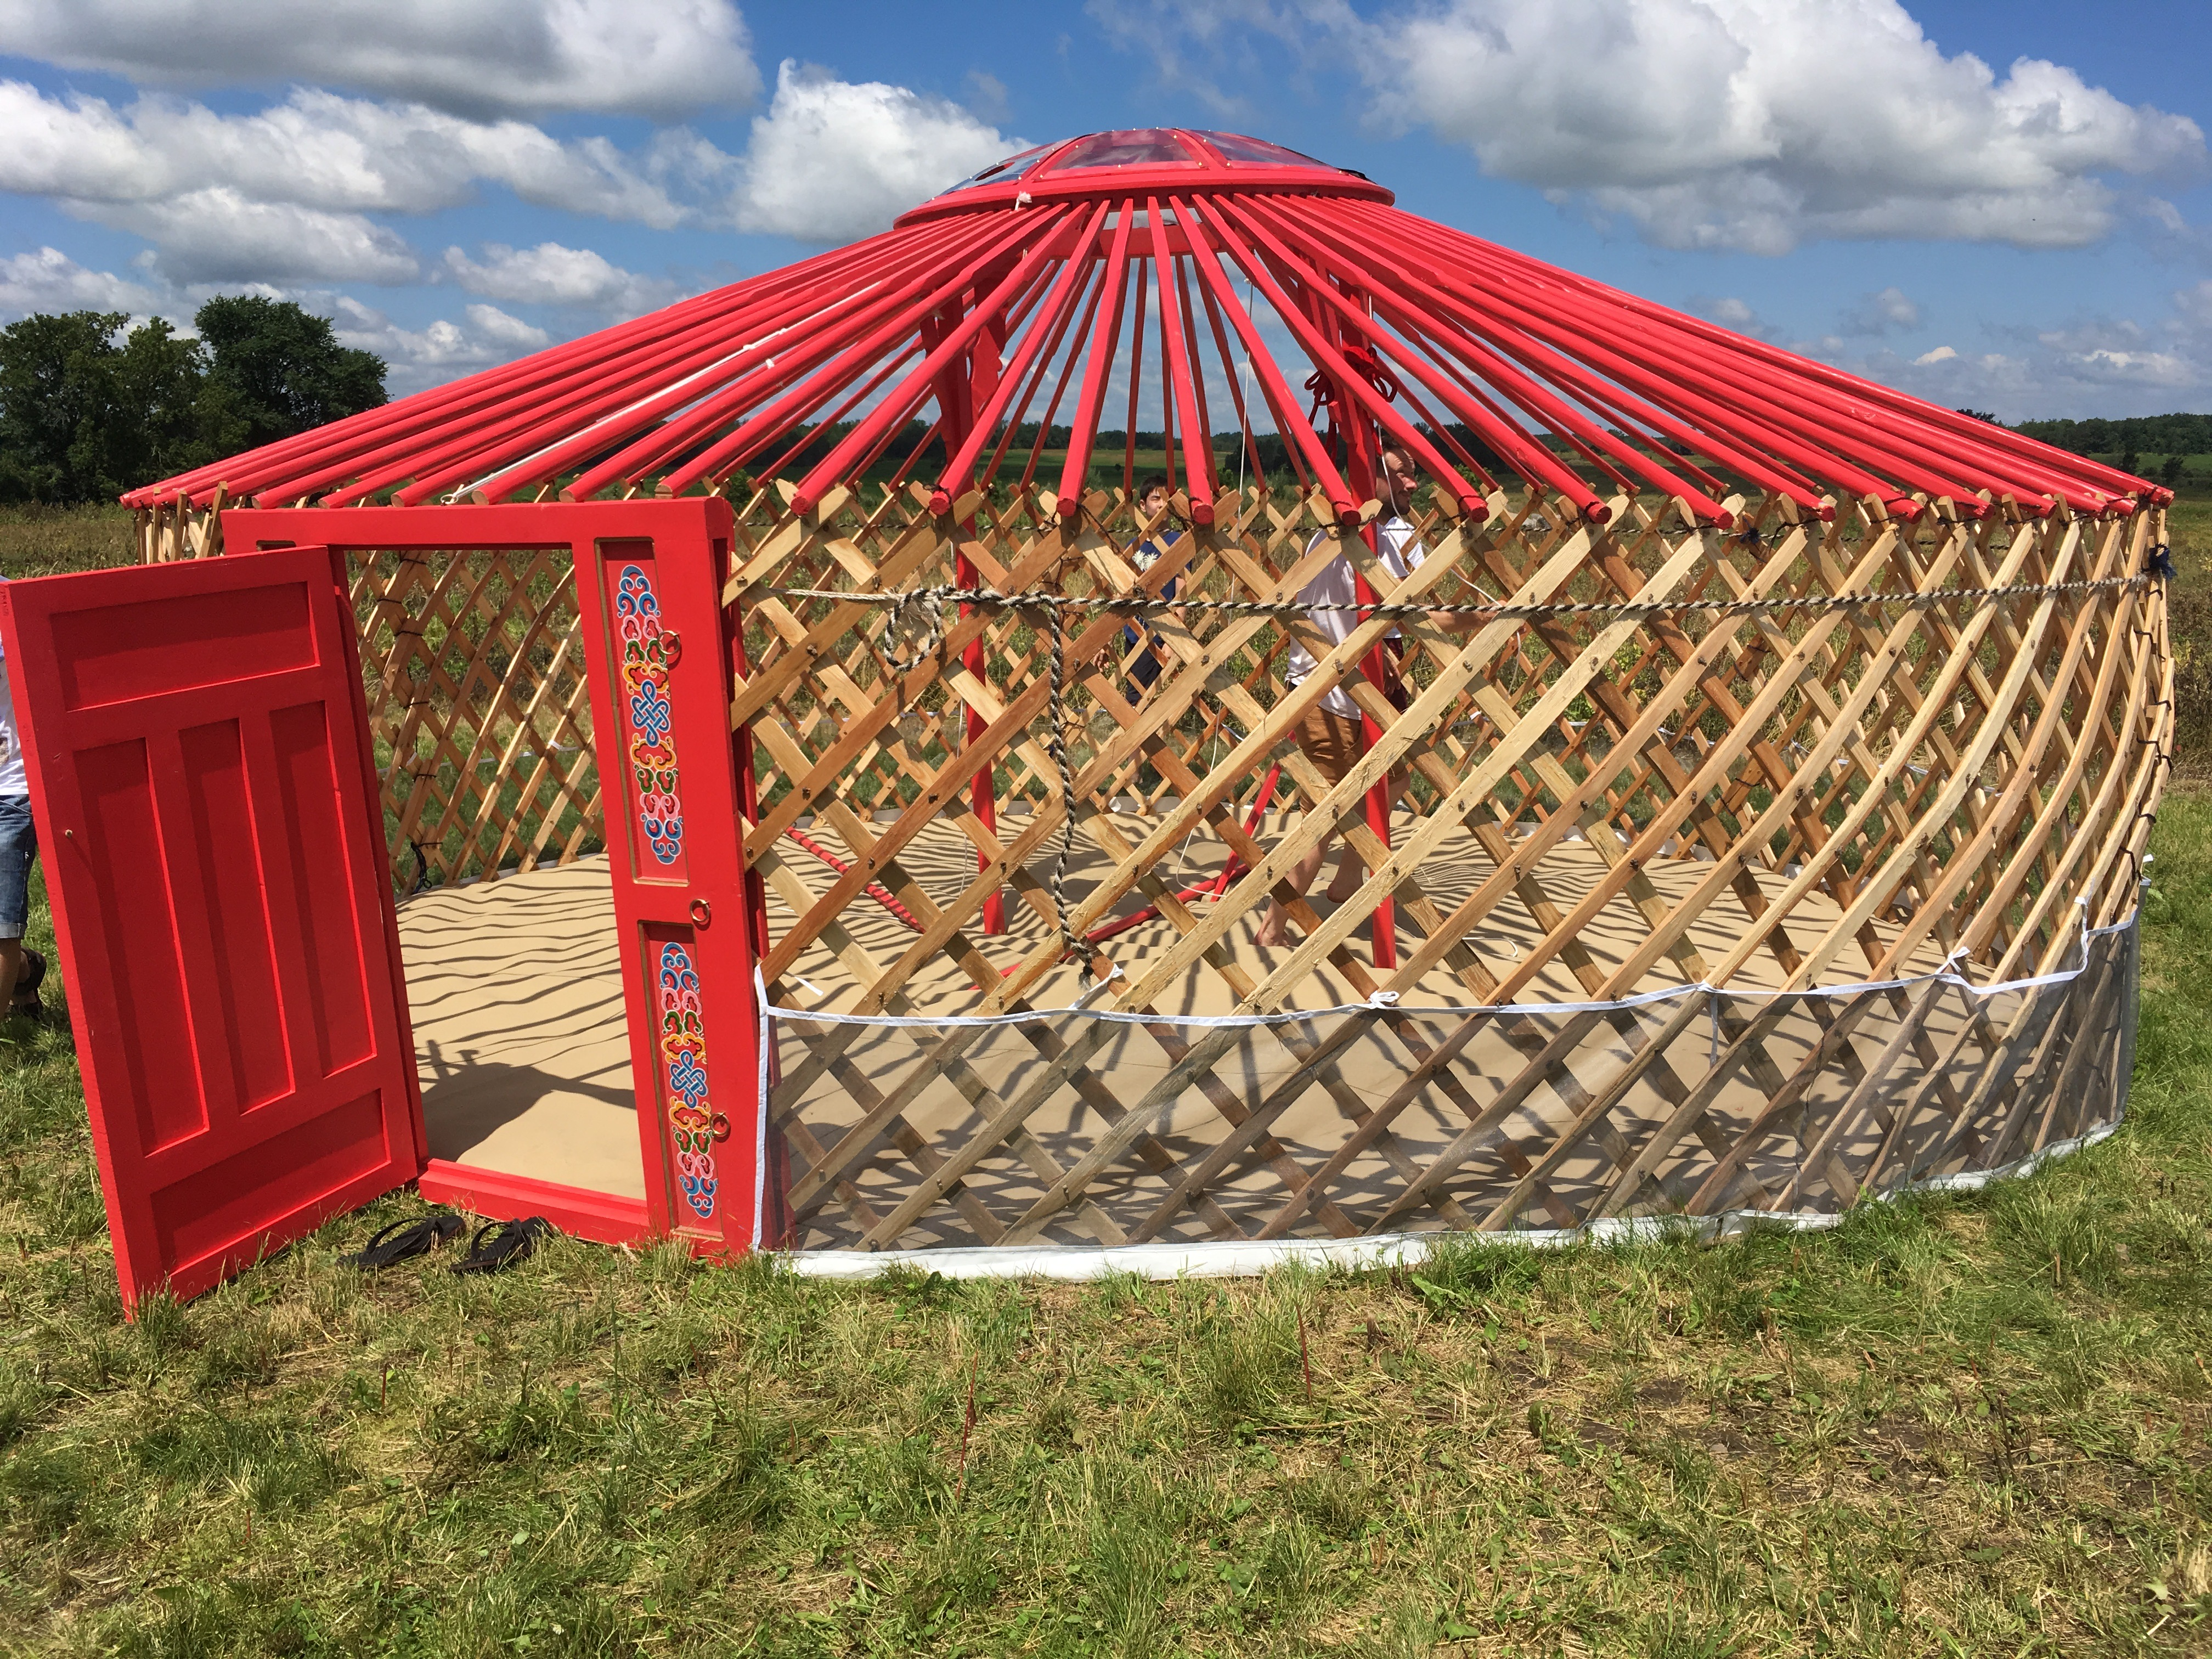 GroovyLite Yurt being set up